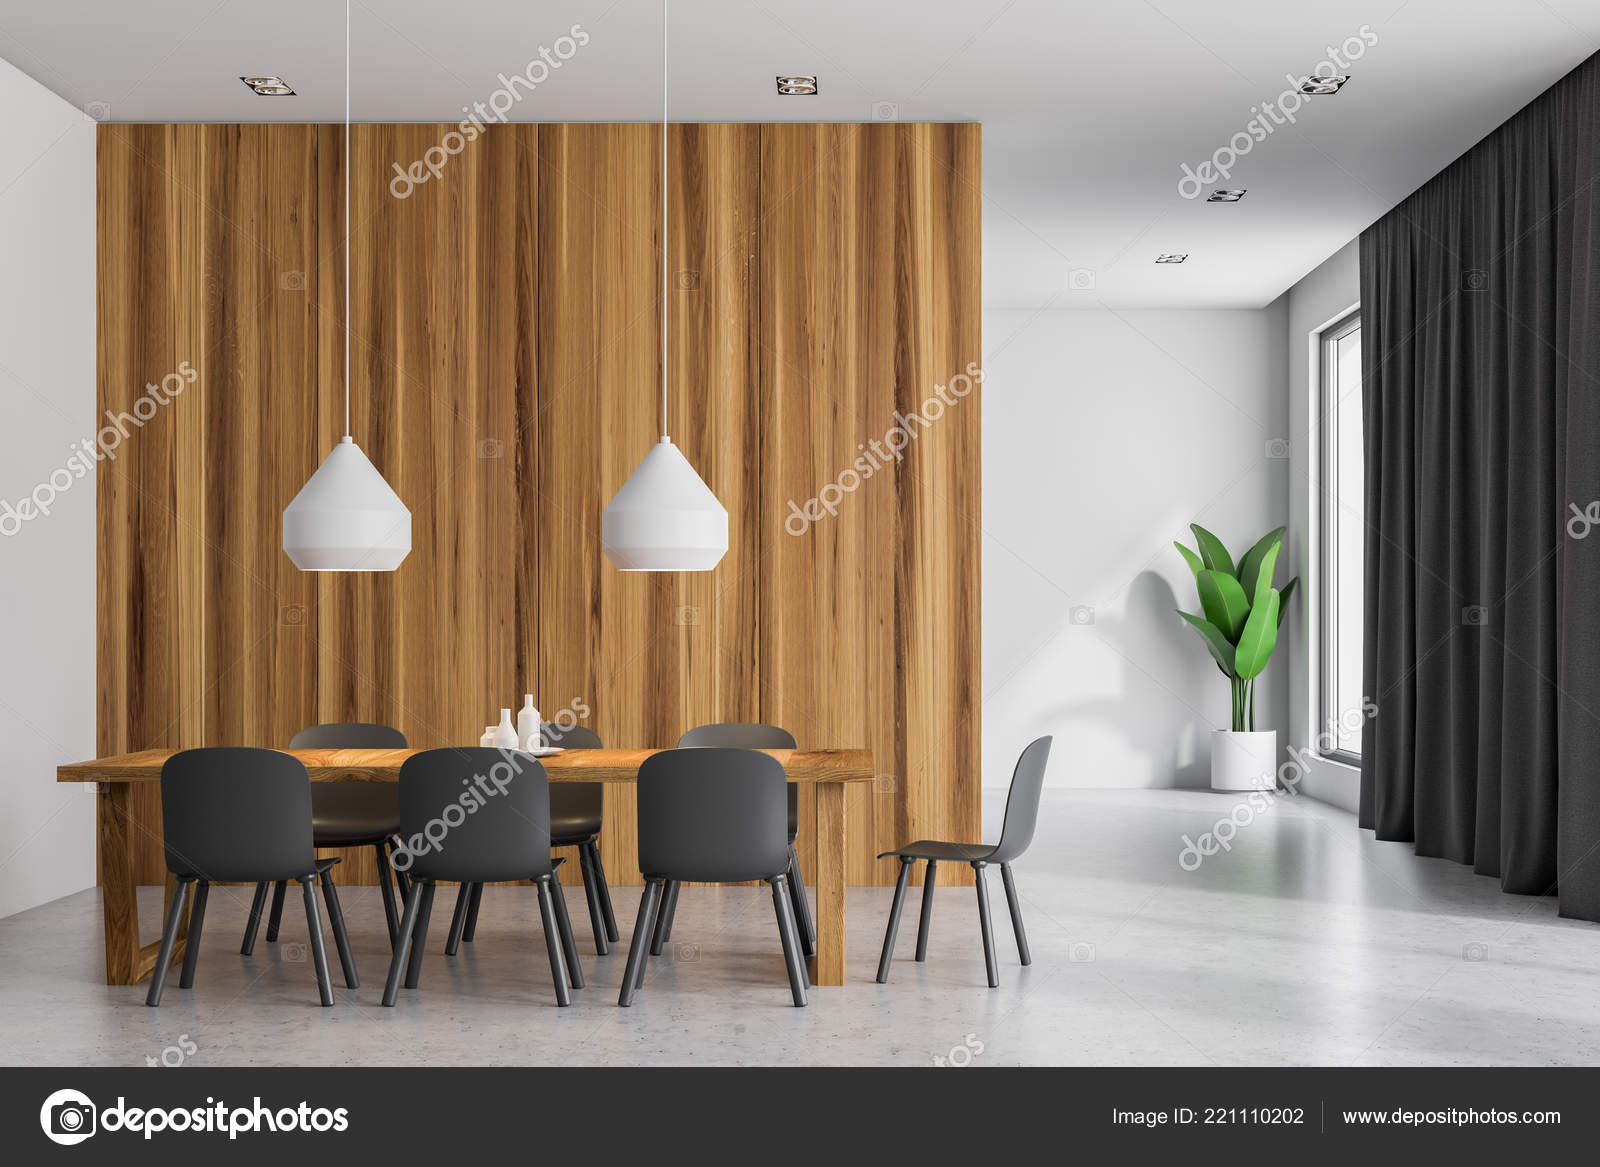 Pictures Dining Room For Walls Front View Modern Dining Room White Wooden Walls Wooden Table Stock Photo C Denisismagilov 221110202